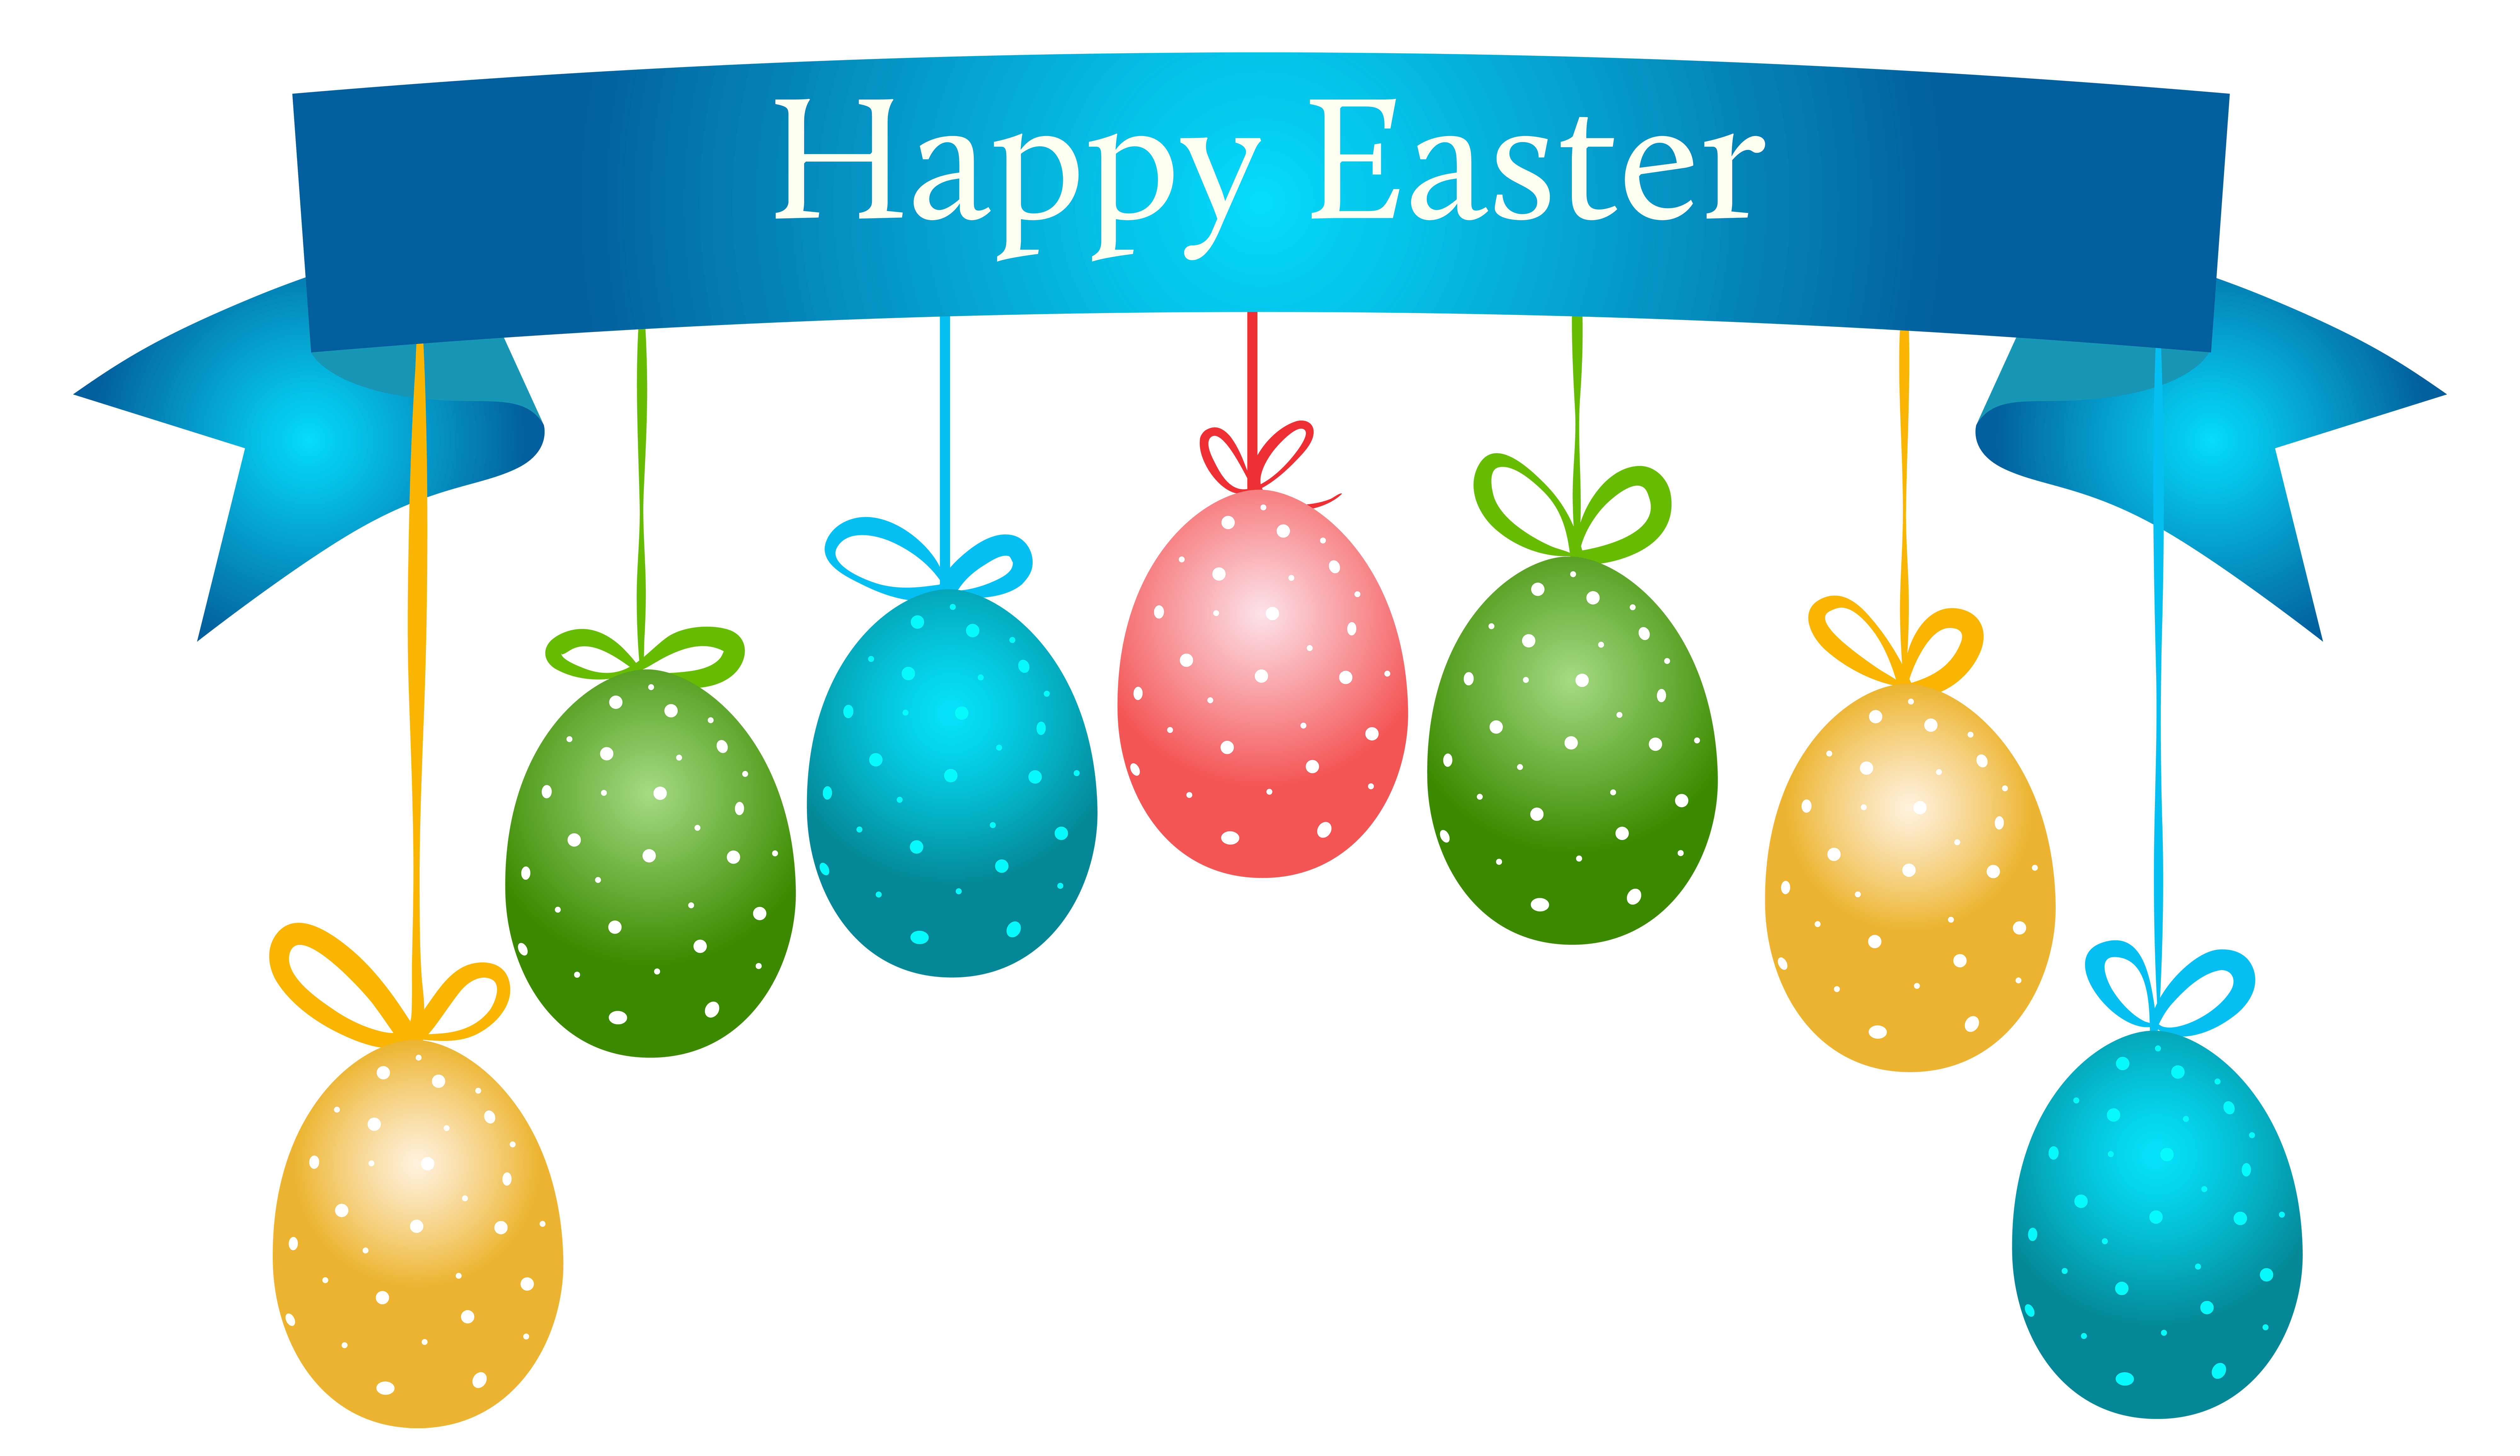 Happy Easter Banner With Hanging Eggs Transparent Png Clip Art Image Happy Easter Banner Easter Banner Happy Easter